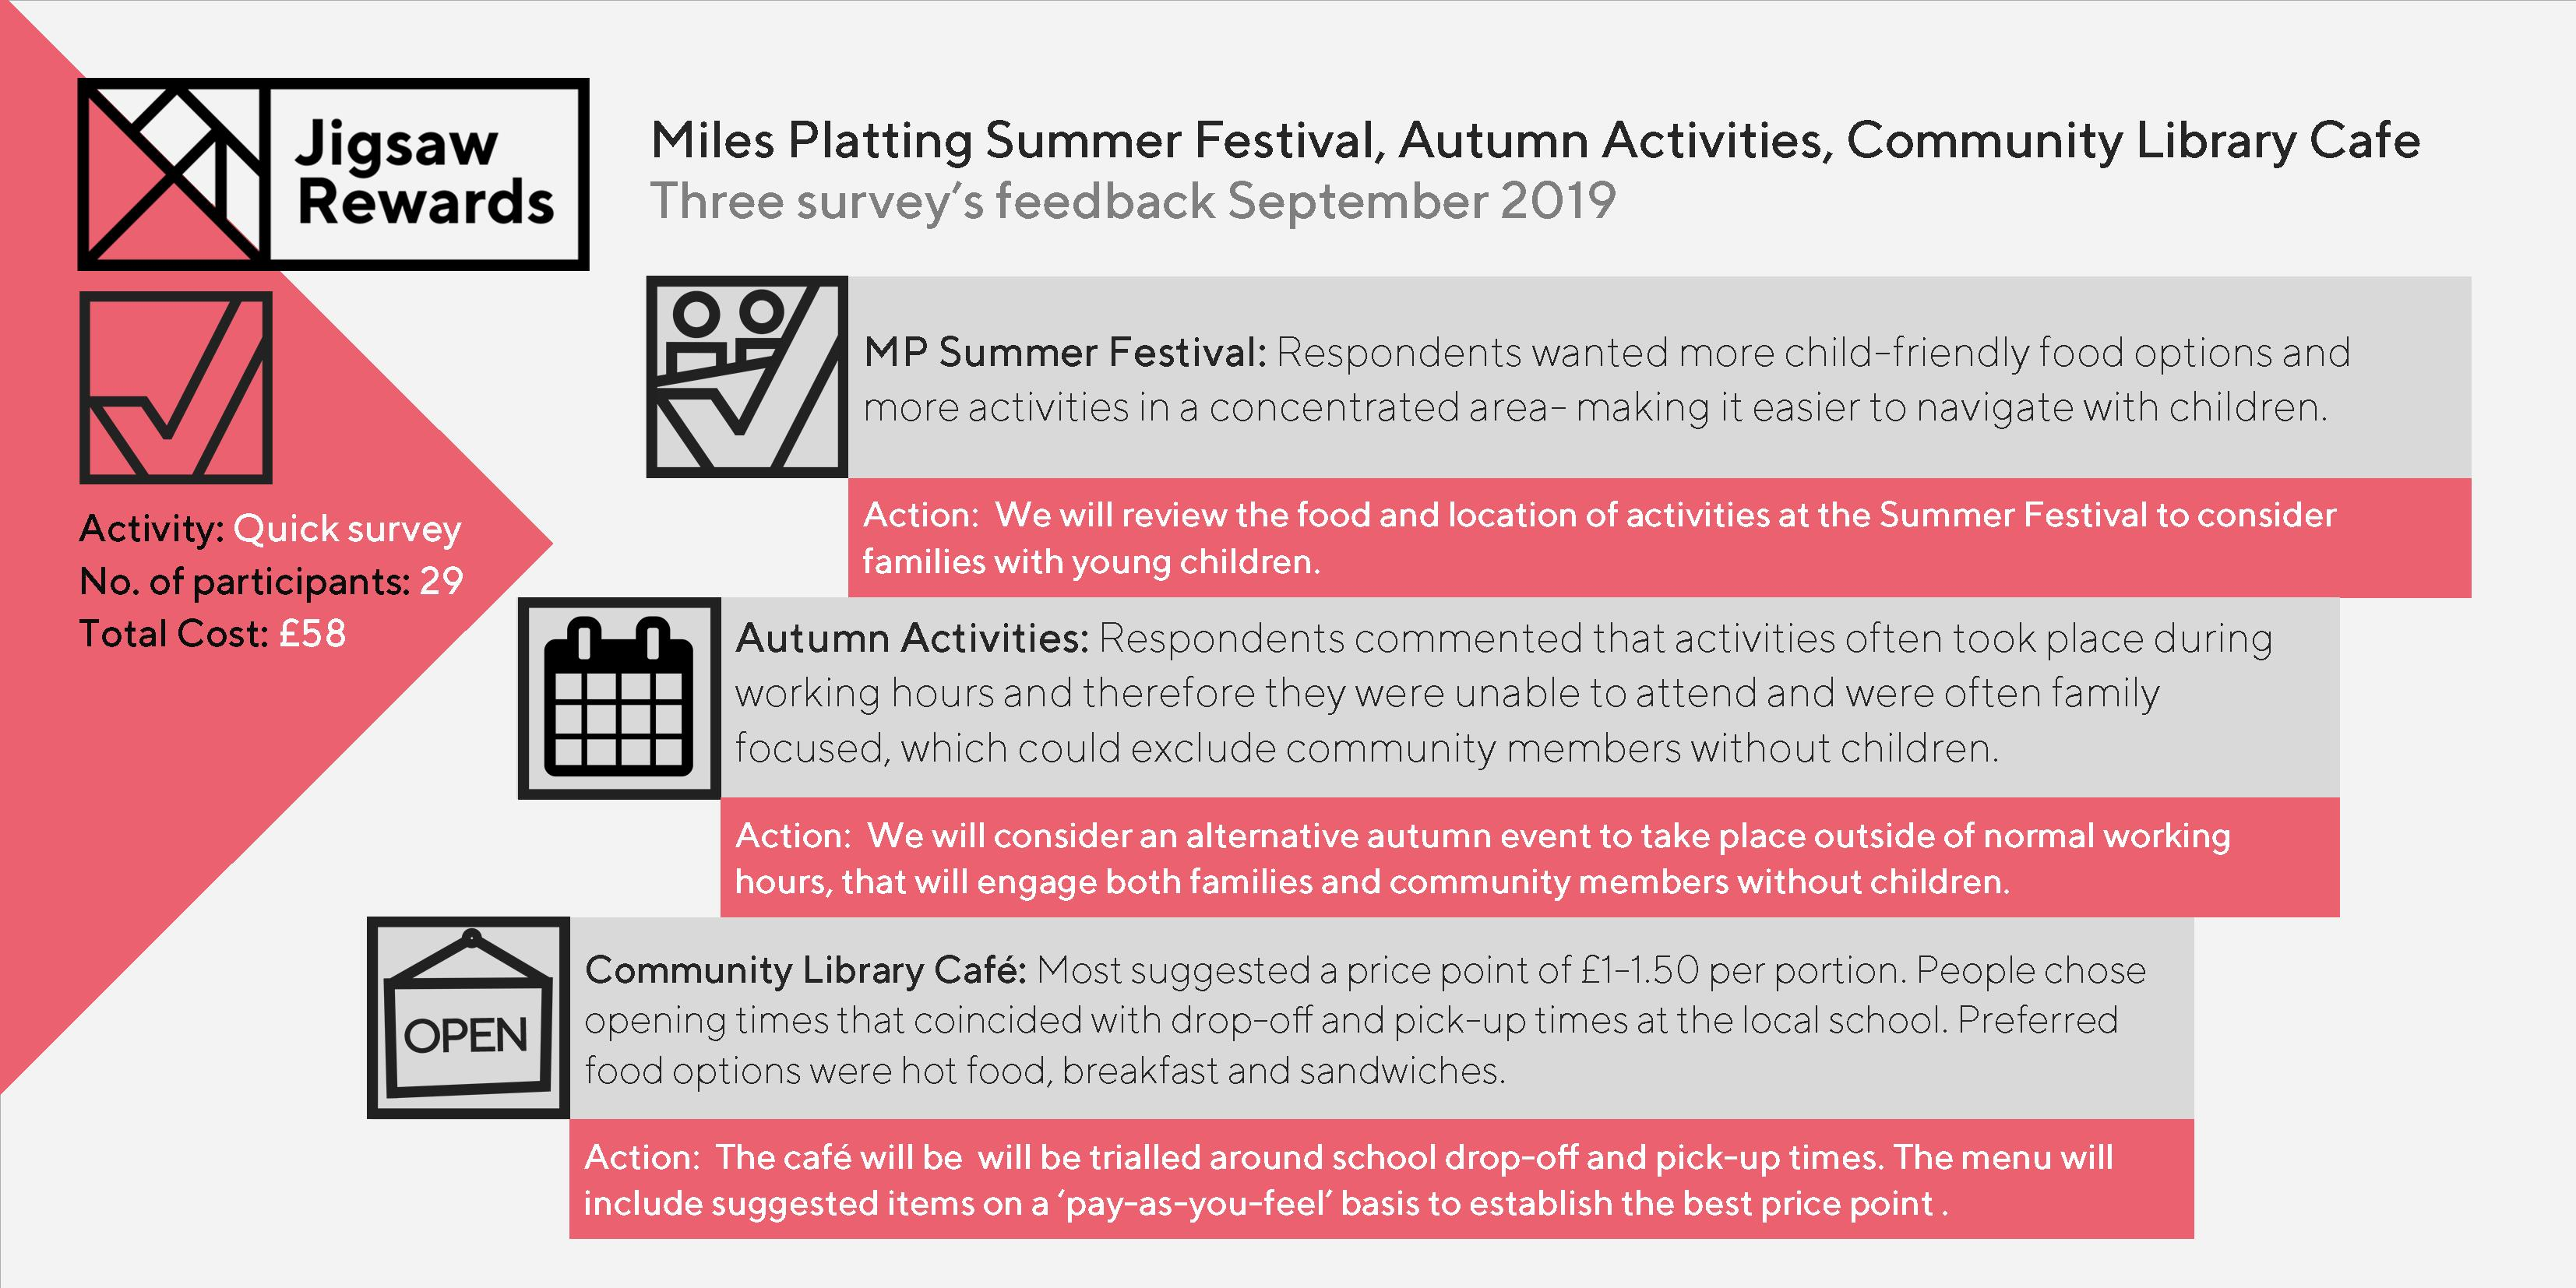 Jigsaw Rewards detailed survey feedback – three quick Miles